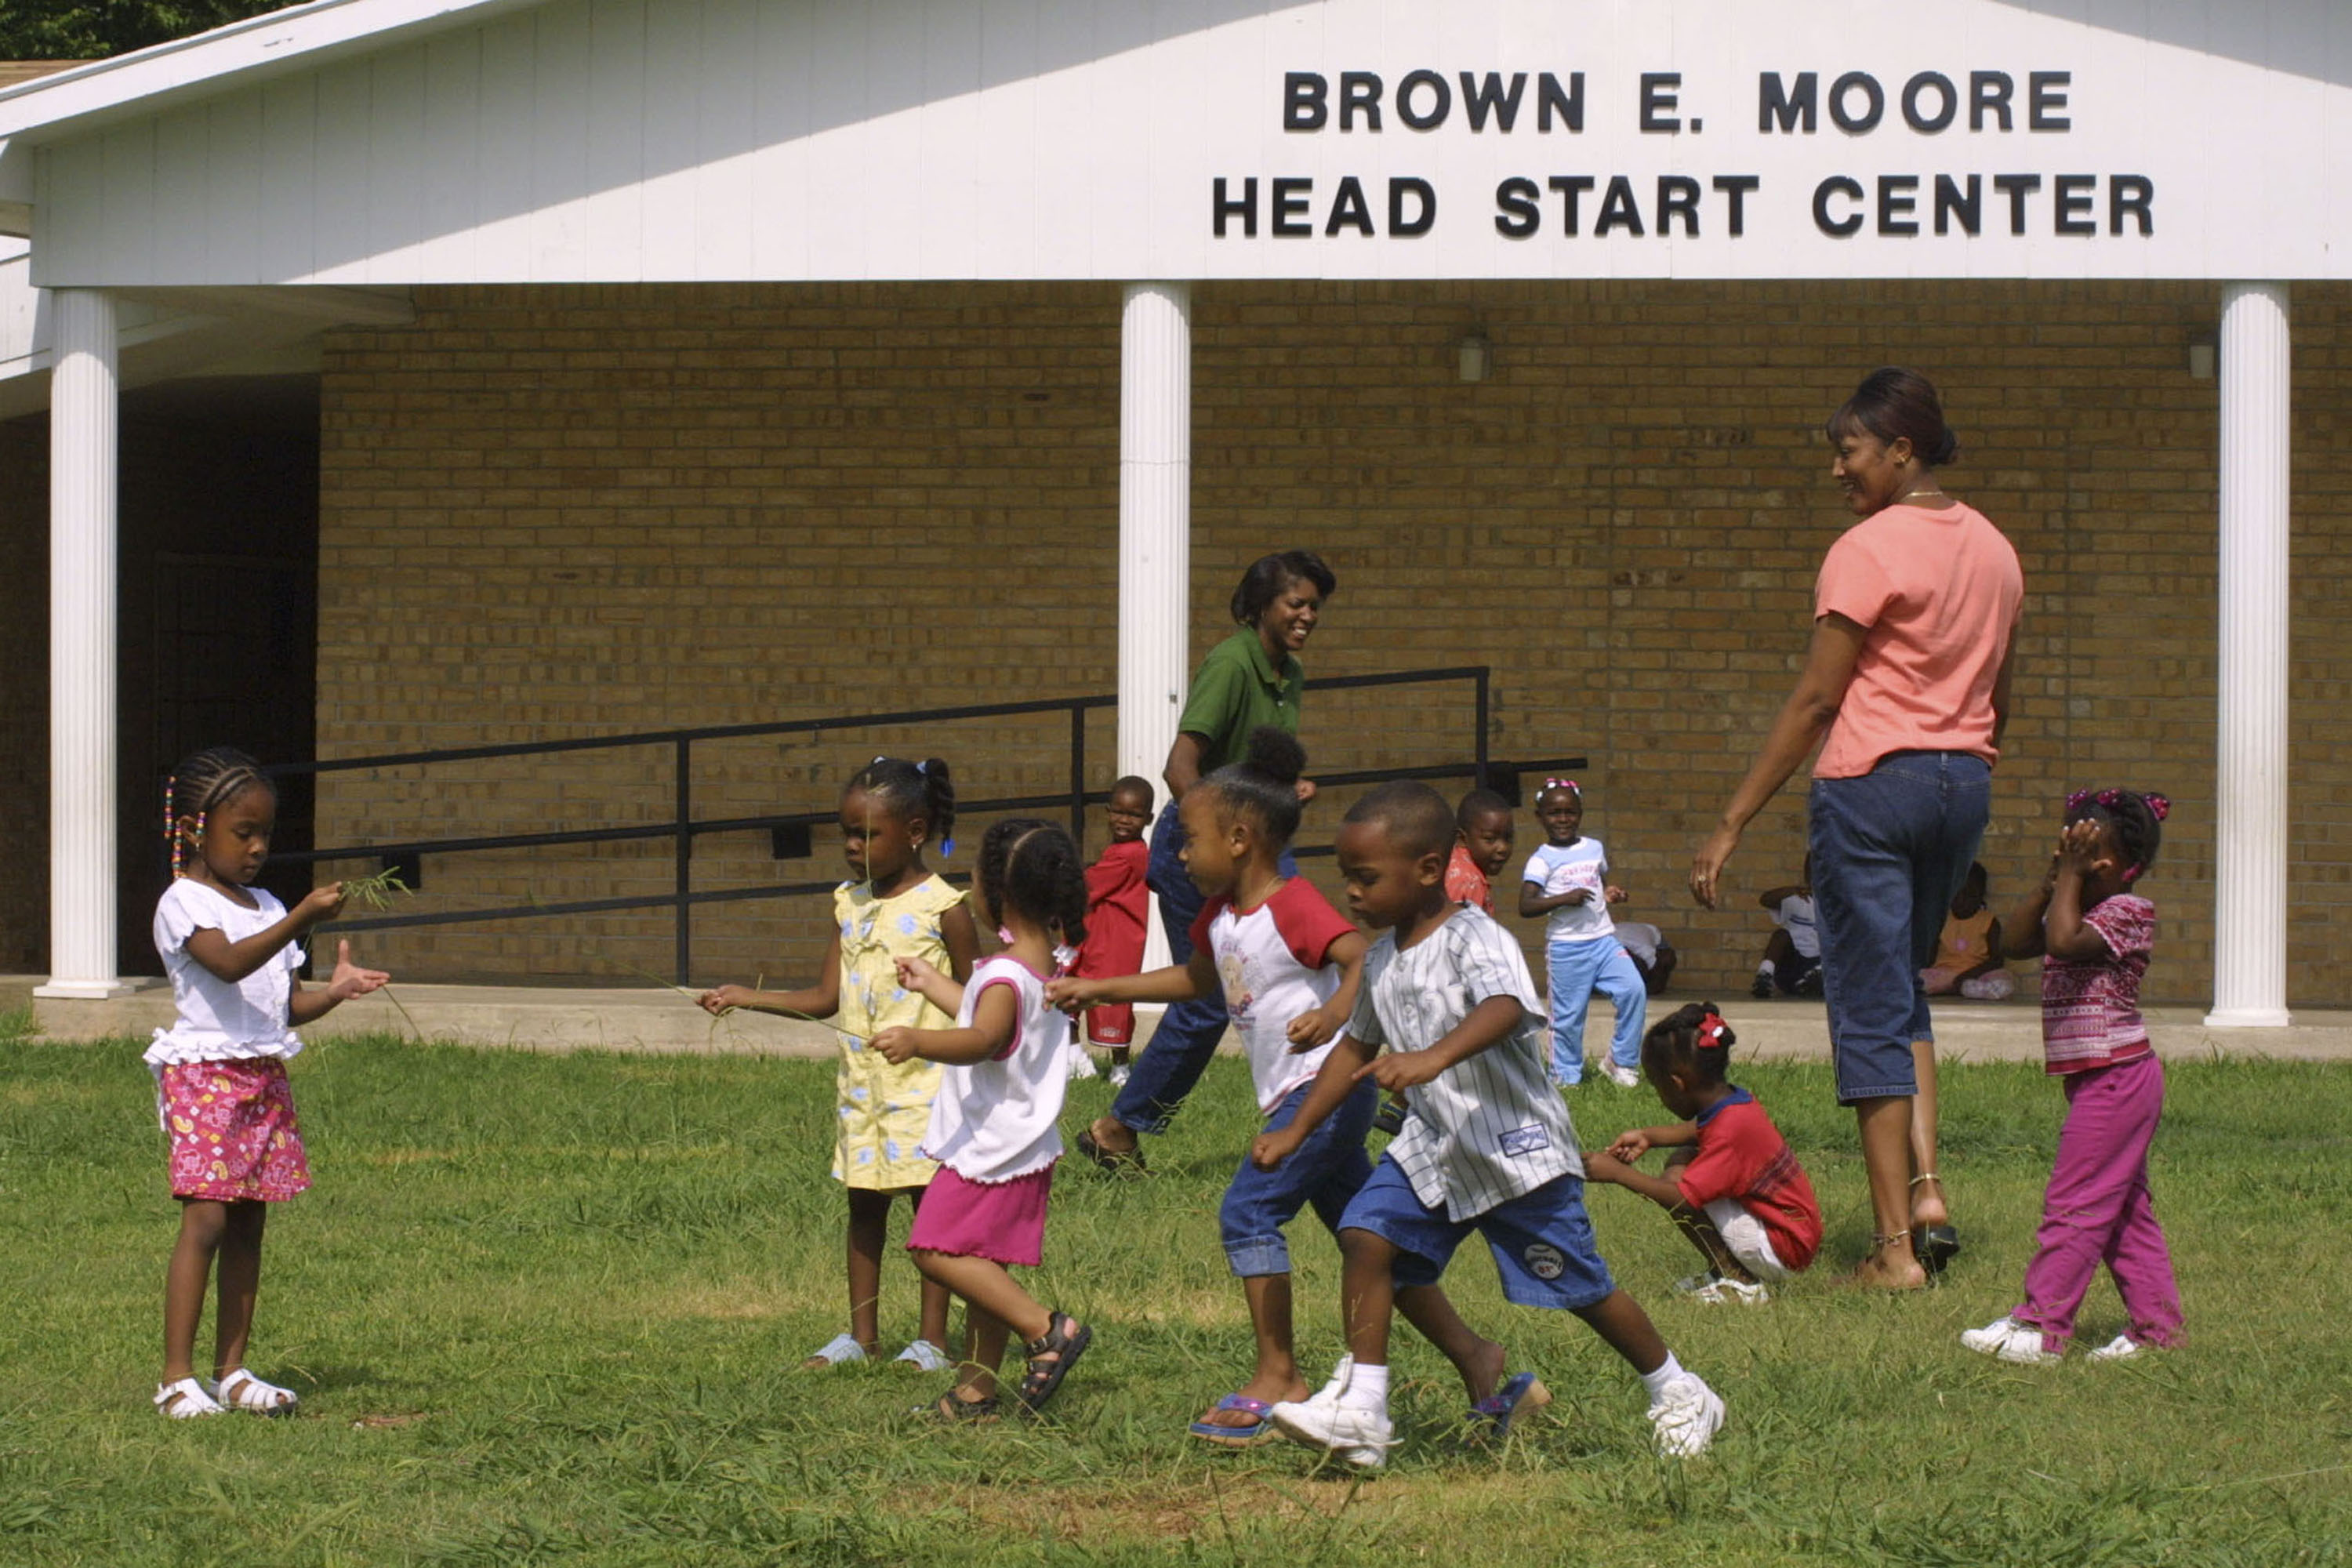 Study: Head Start improves kids' lives. But we're still finding out just how.